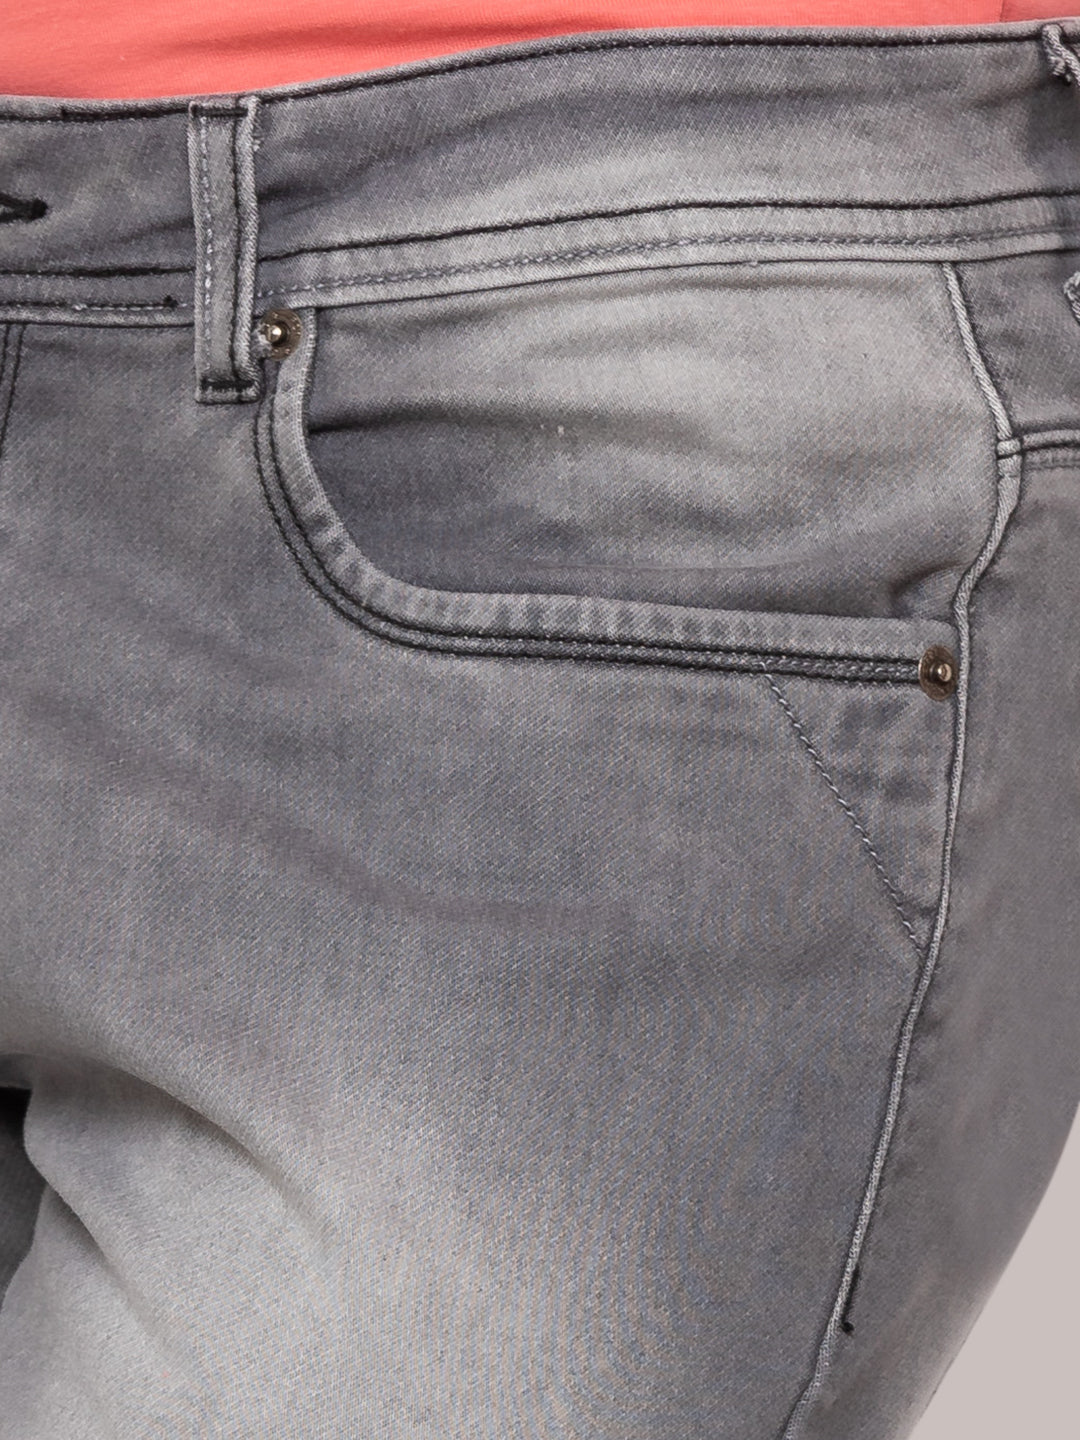 Globus Grey Washed Clean Look Jeans-5